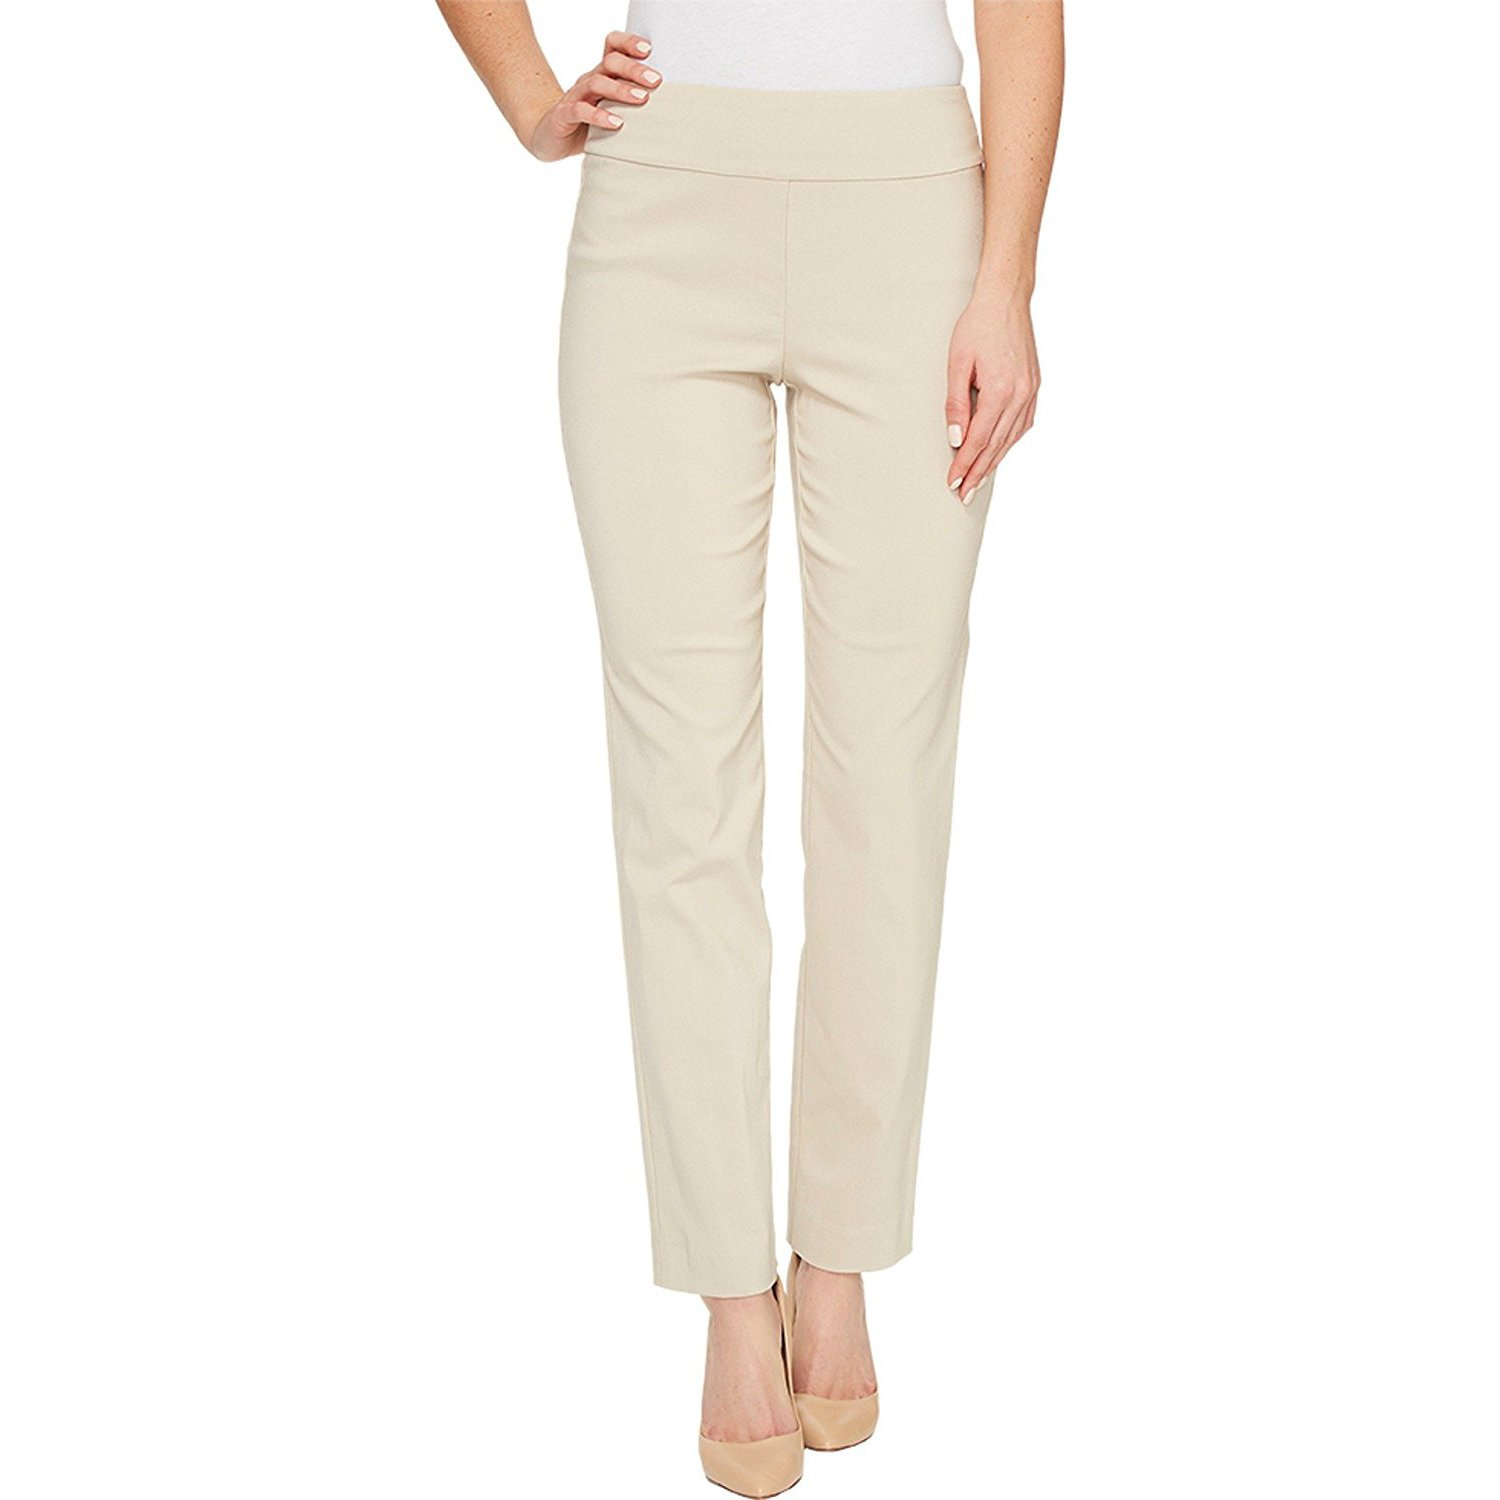 Krazy Larry Women's Pull On Ankle Pant Ivory Size 12